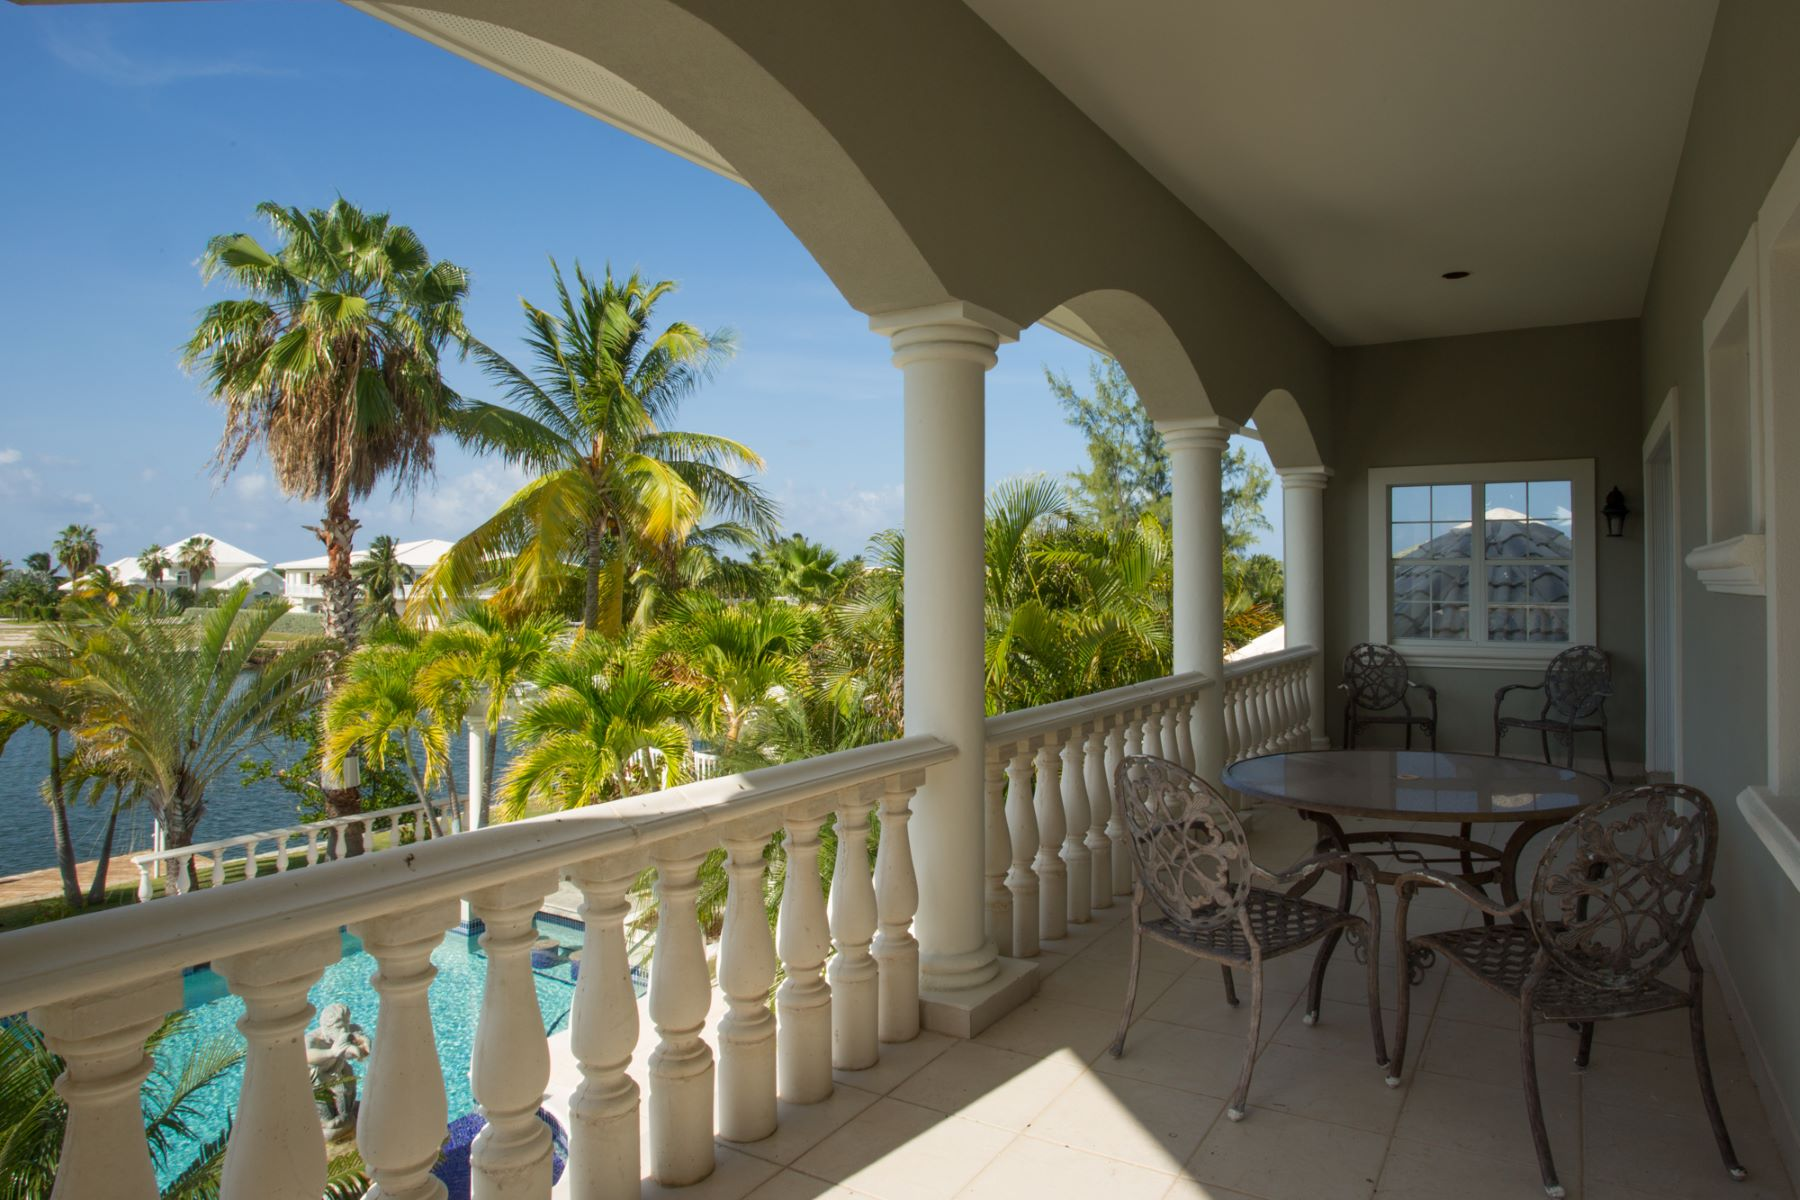 Additional photo for property listing at Canal front luxury home Shoreview Point 73 The Shores West Bay, Gran Caimán KY1 Islas Caimán